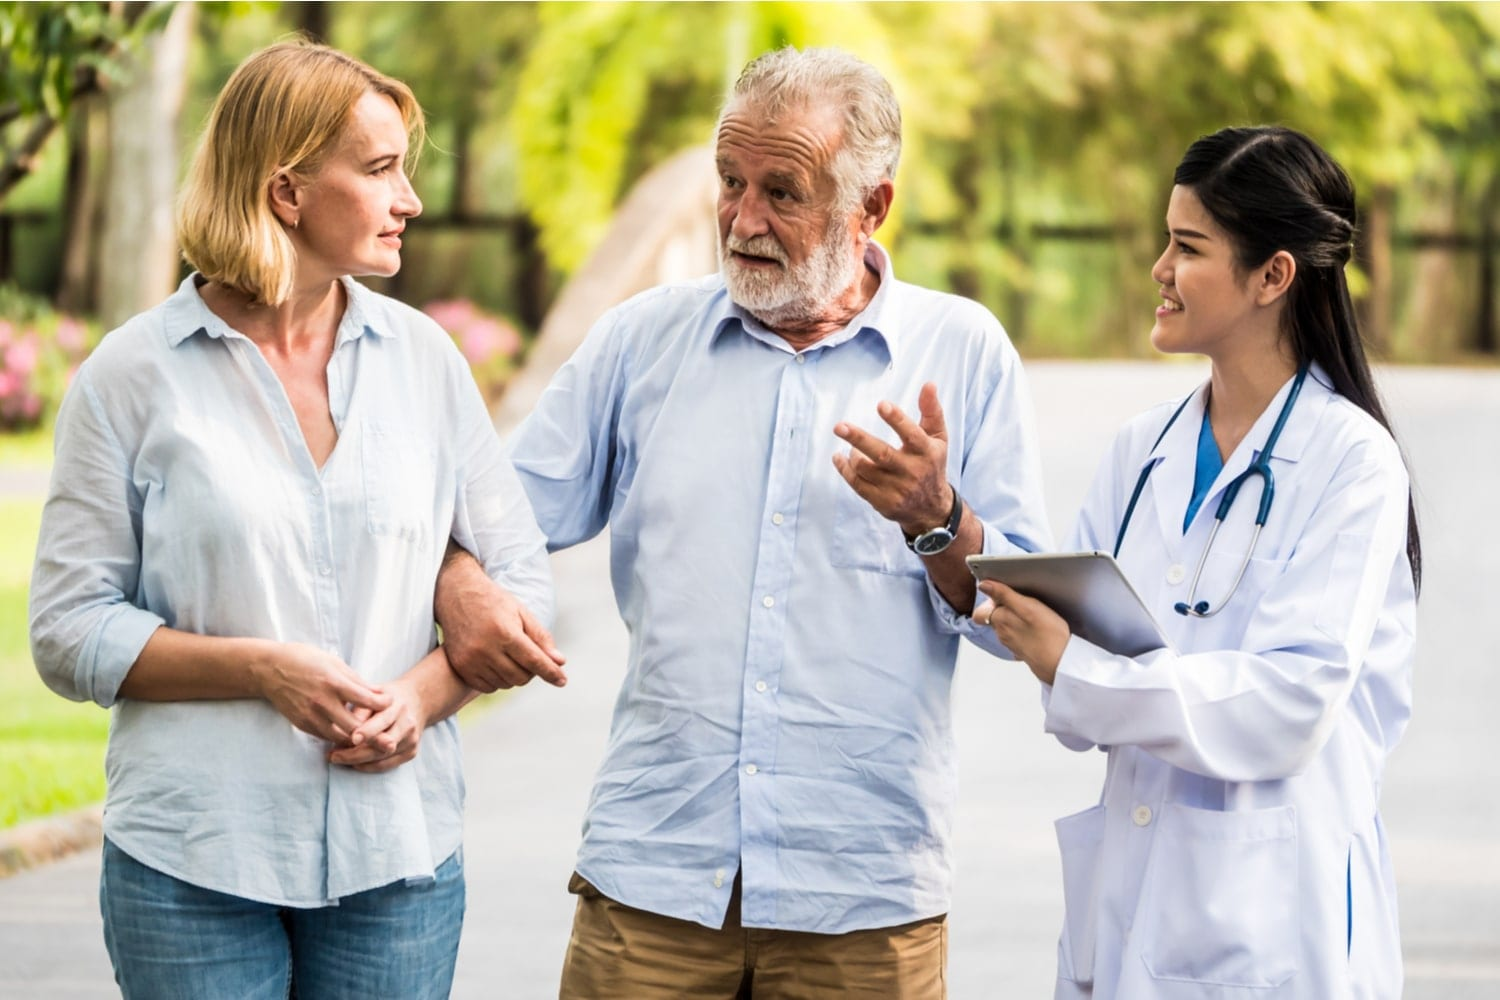 Compare health insurance: couple walking with medical professional